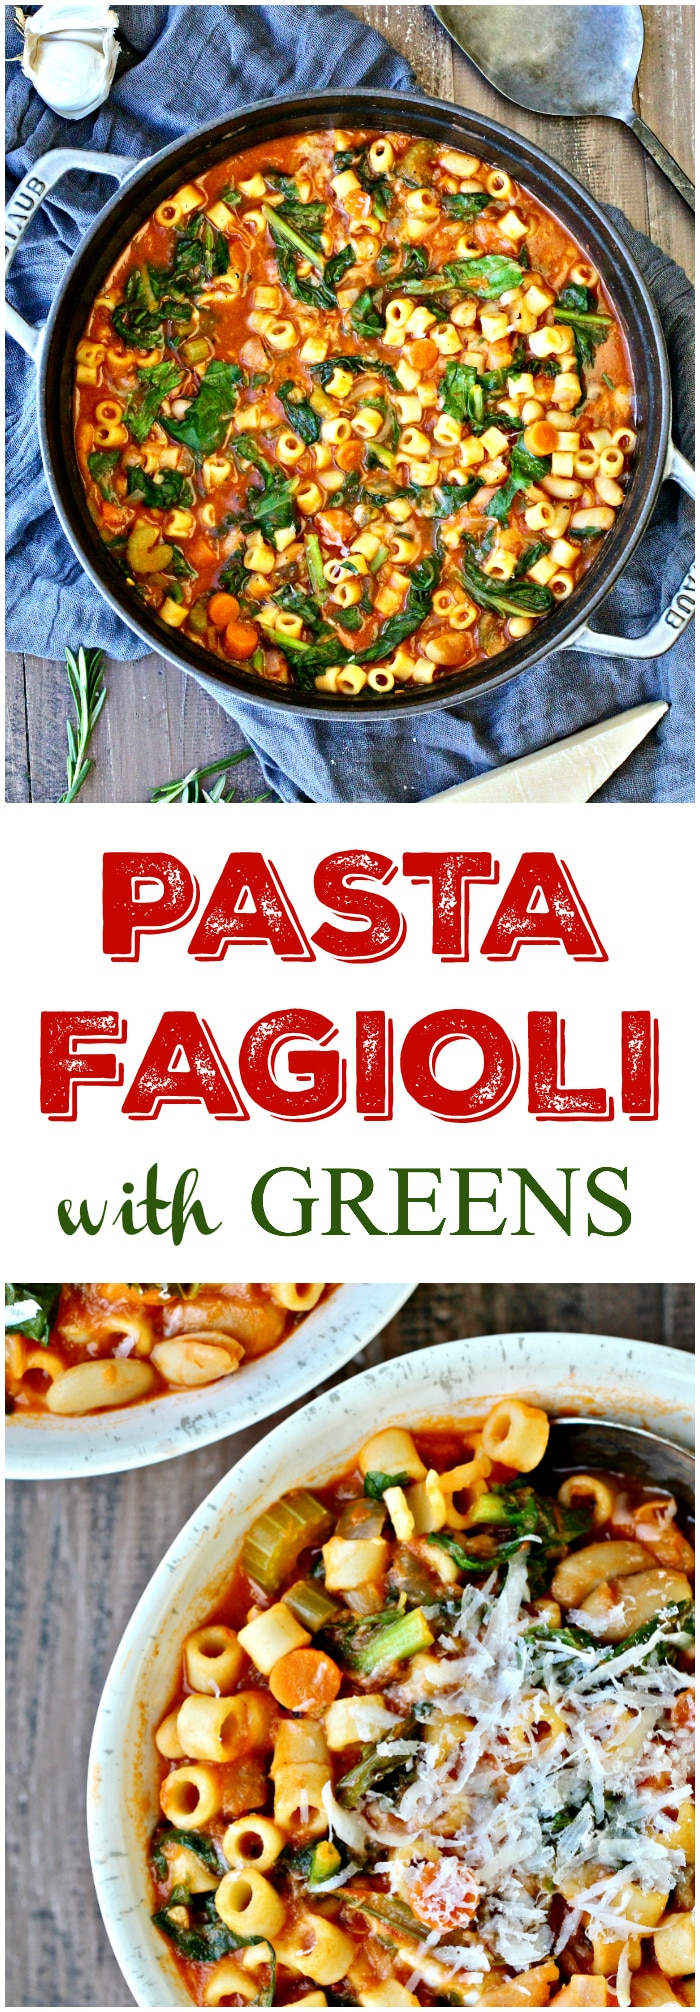 This Pasta Fagioli with Greens isa comforting, stick-to-your-ribs soup that's satisfying and full of flavor!